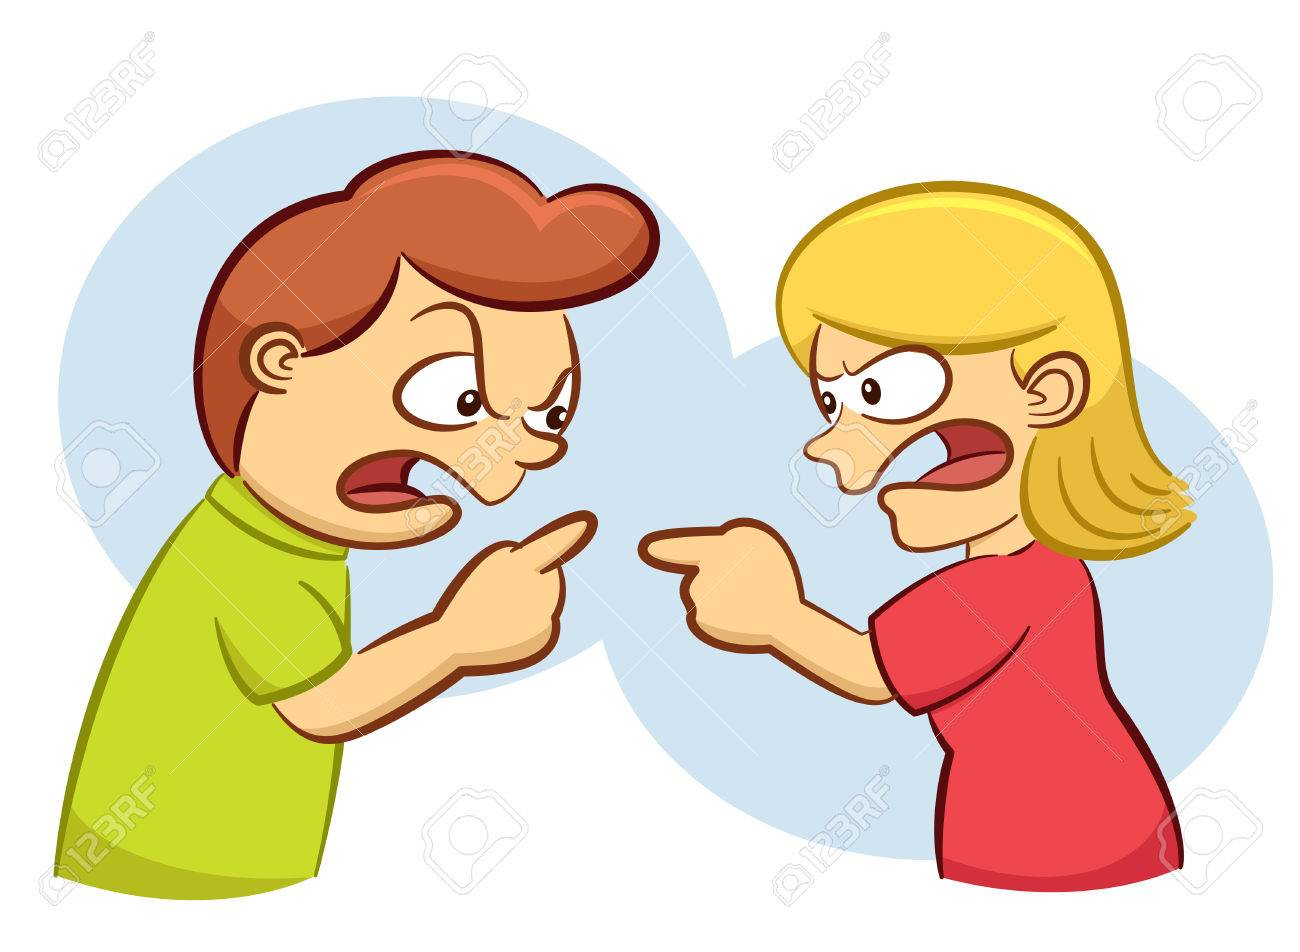 man and woman arguing with angry expression cartoon illustration rh 123rf com Arguing Cartoon no arguing clipart